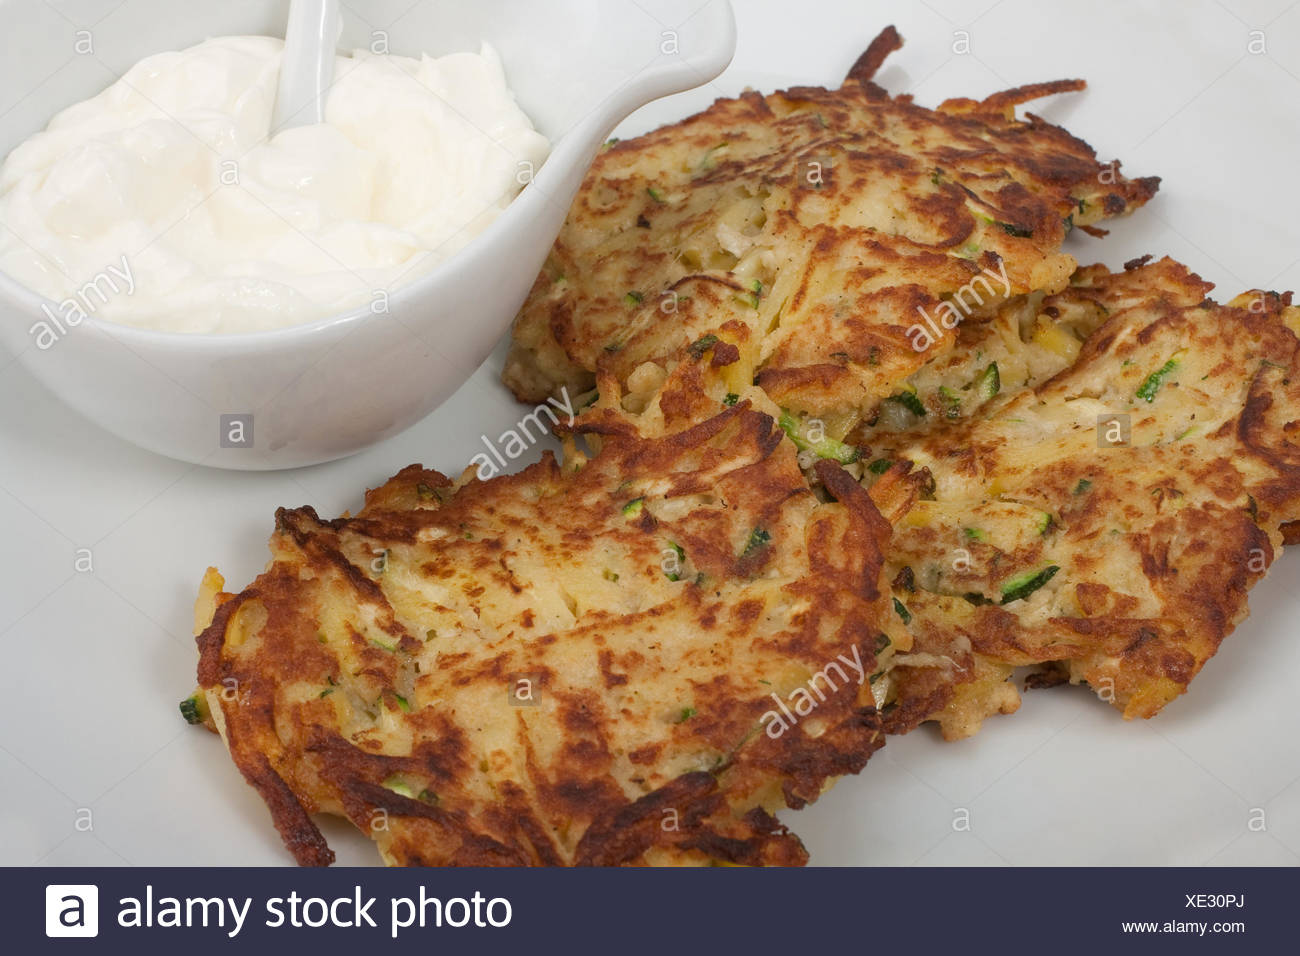 potato and courgette fritters with dip - Stock Image